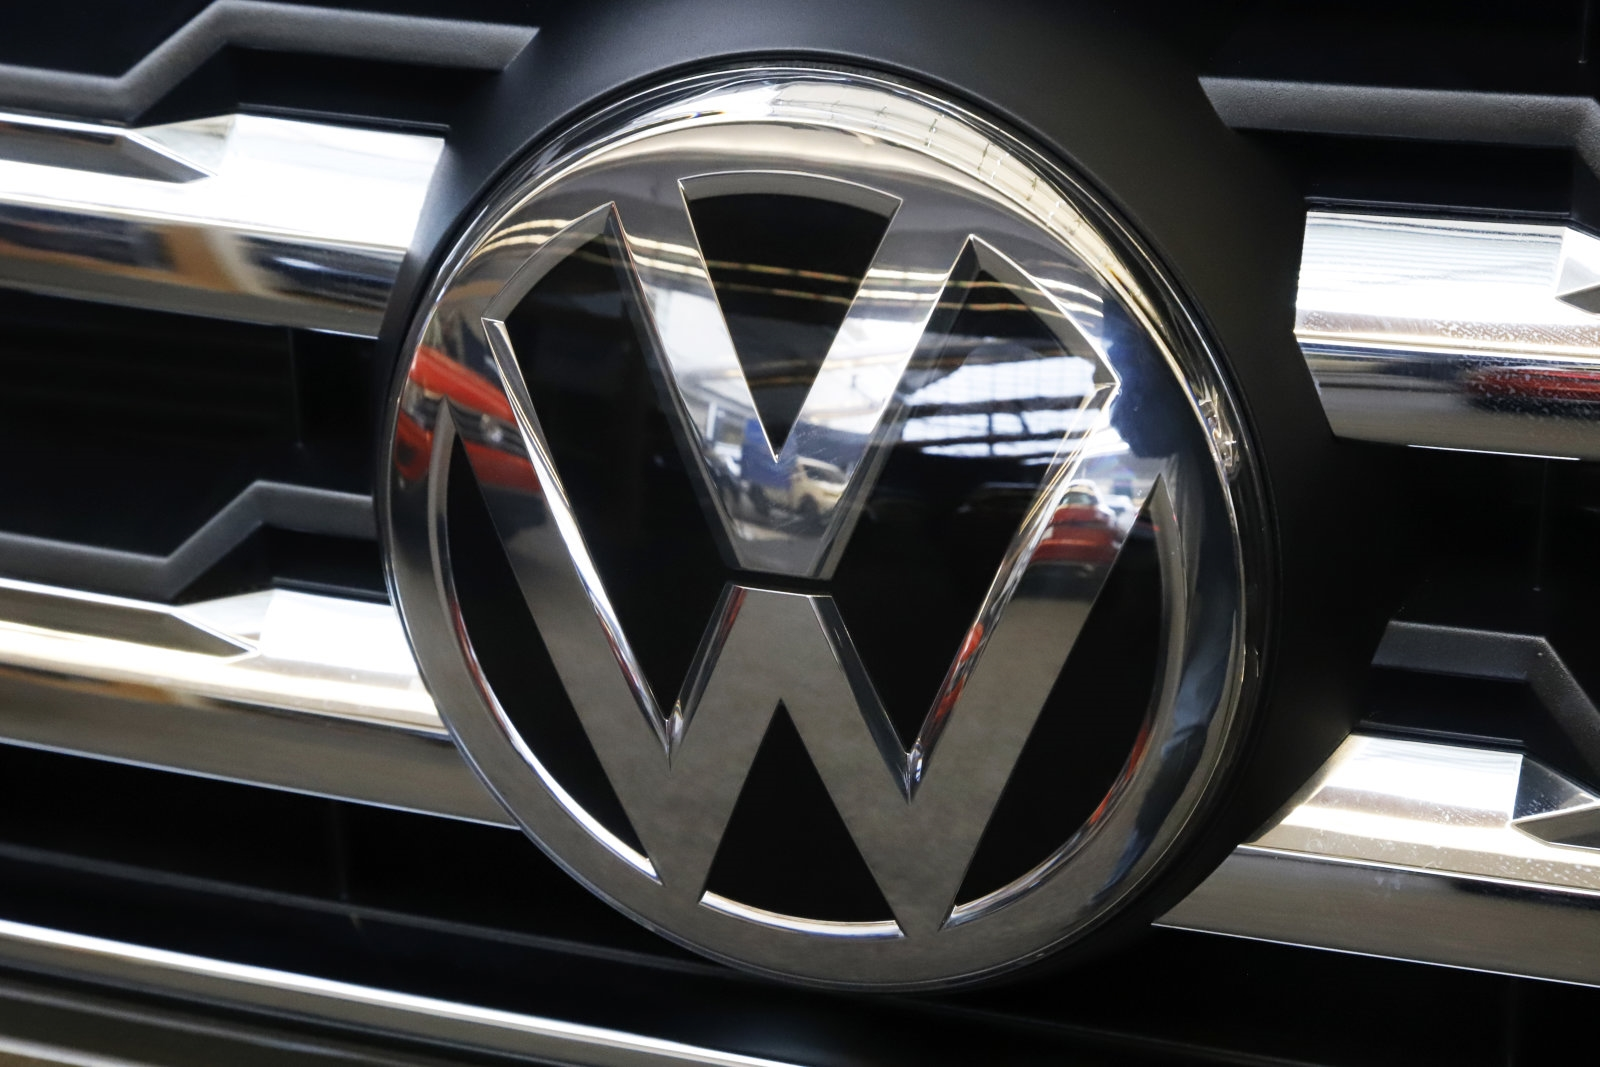 VW and its former CEO charged with defrauding investors in diesel scandal | DeviceDaily.com